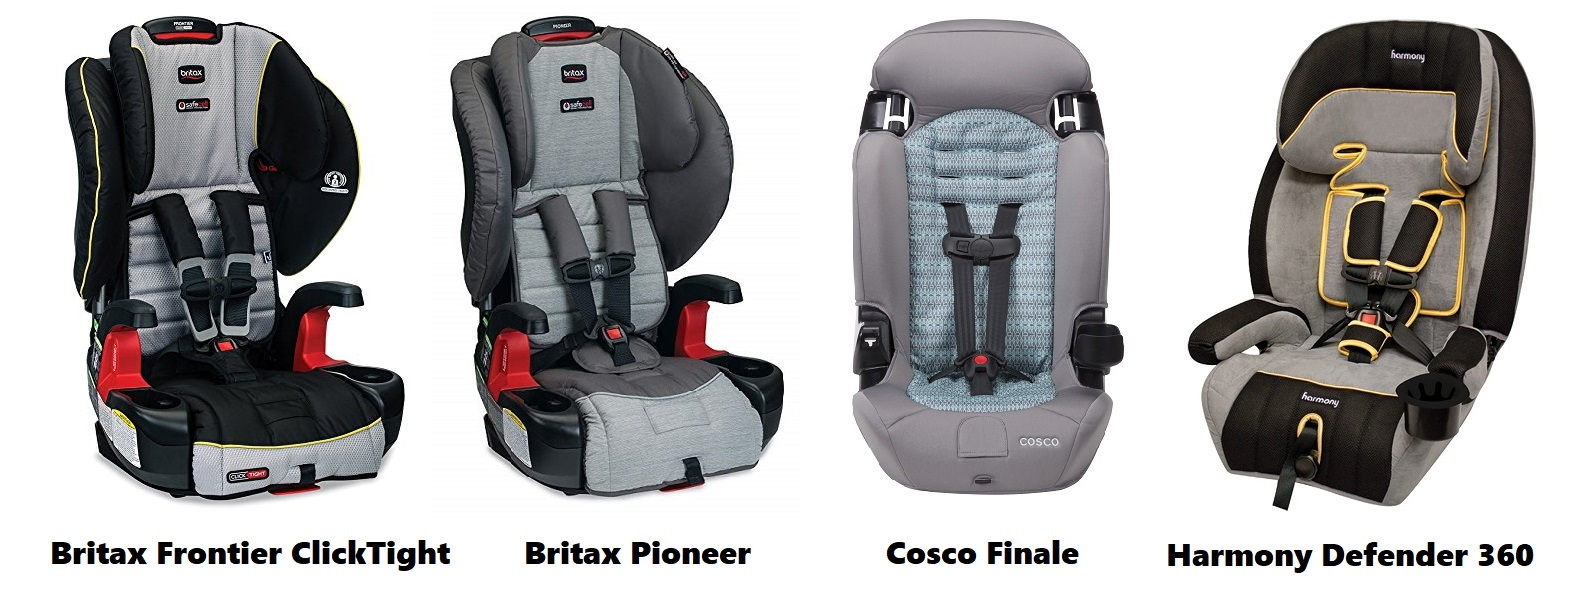 Baby Car Seat Test Carseatblog The Most Trusted Source For Car Seat Reviews